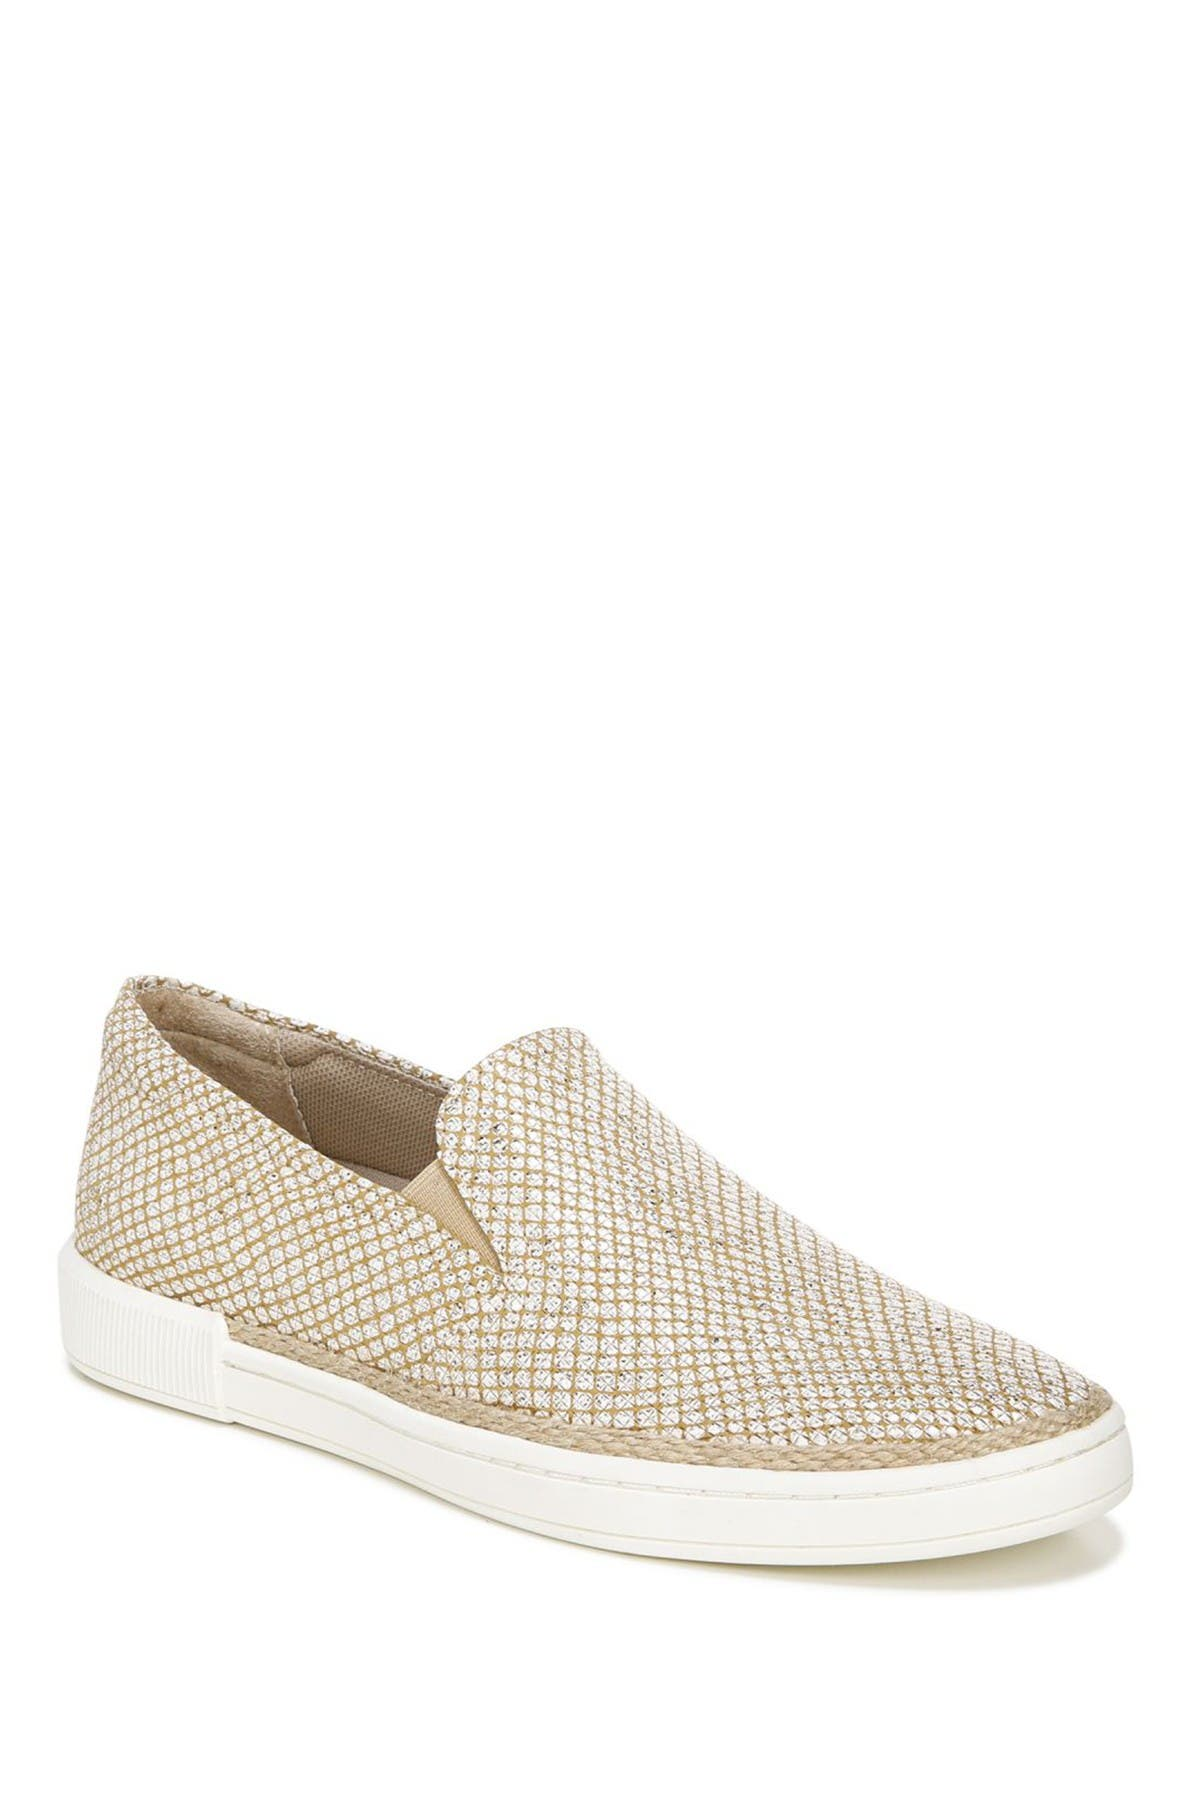 Image of Naturalizer Zola Leather Slip-On Sneaker